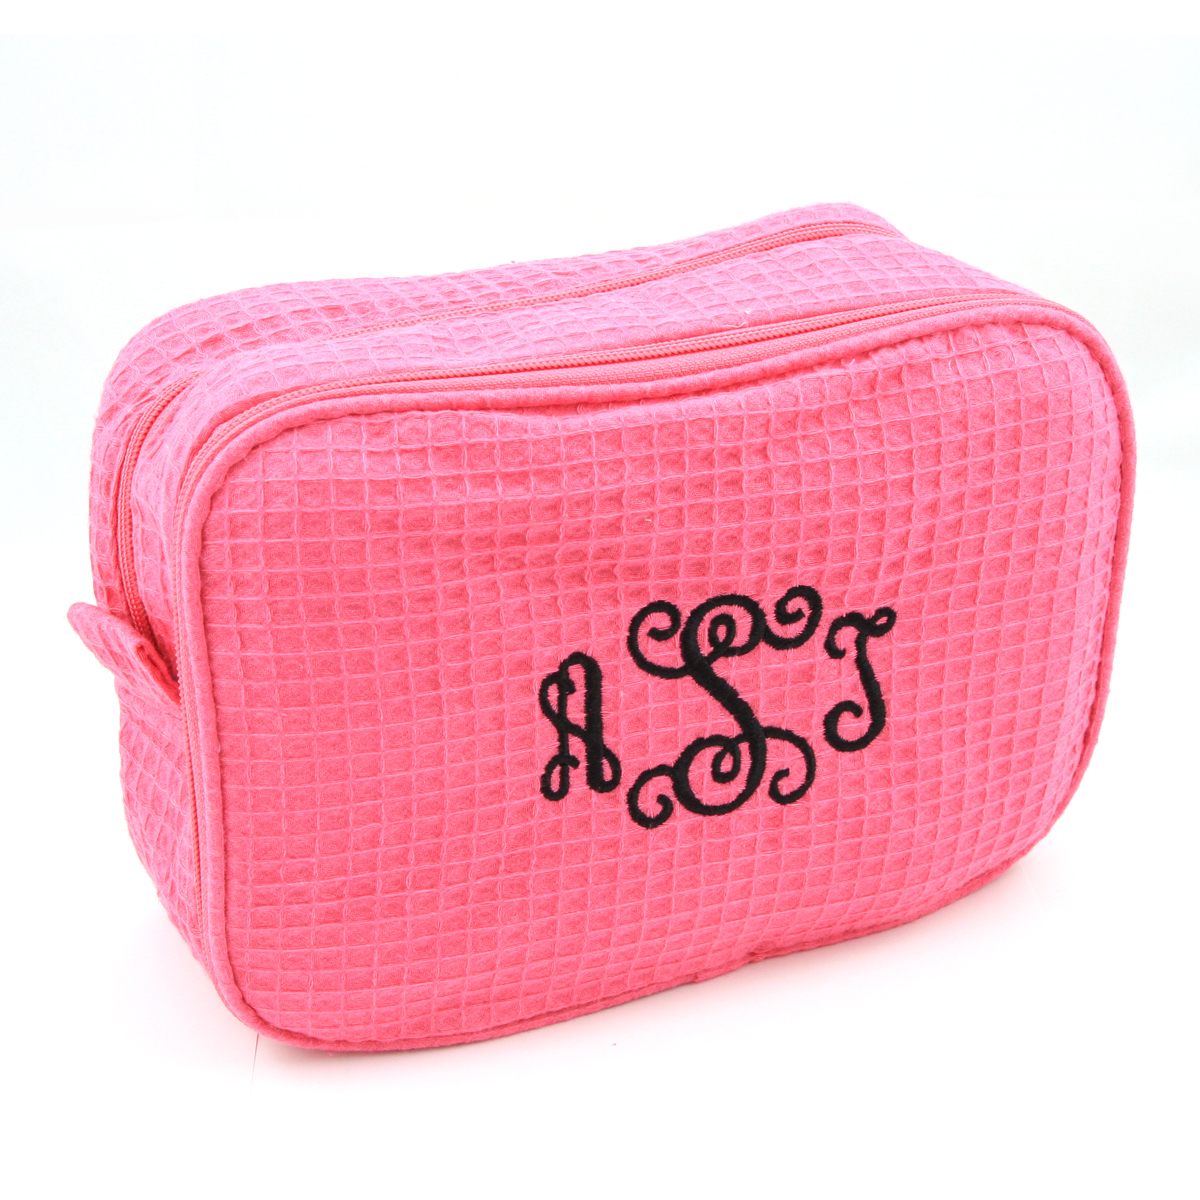 Personalized embroidered waffle cosmetic bag and i quote